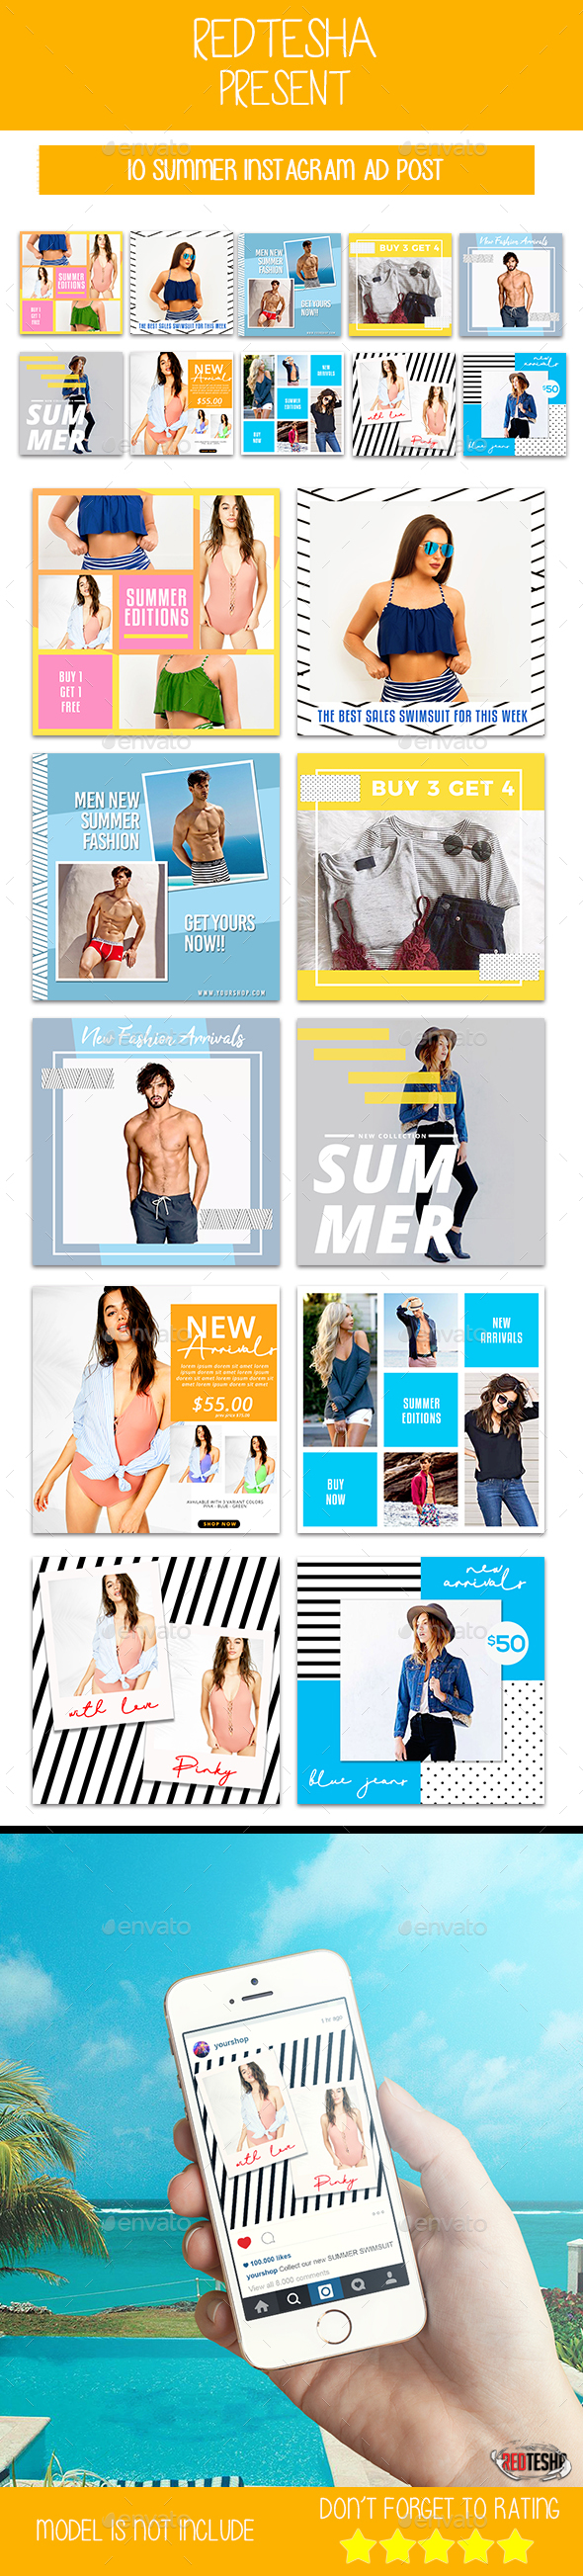 Instagram Fashion Banner #11 - Banners & Ads Web Elements